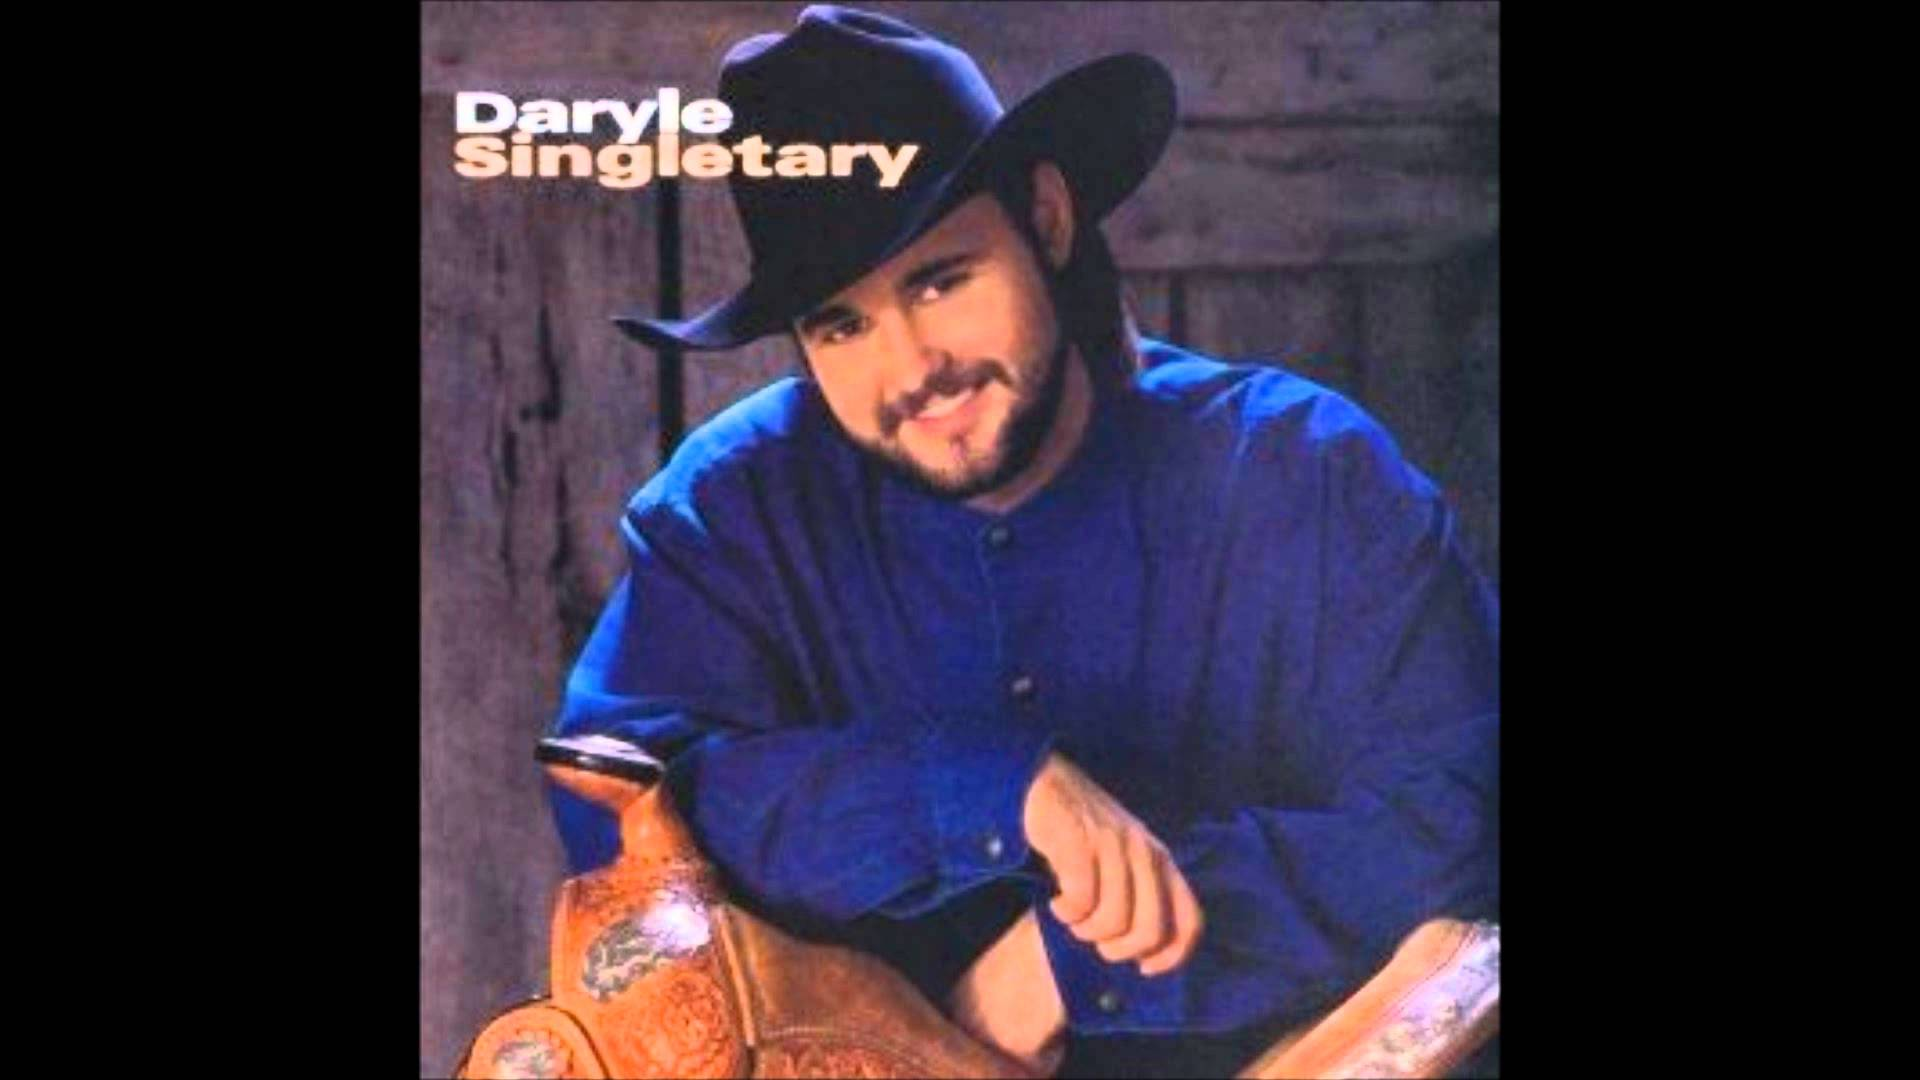 Daryle Singletary Dead at 46 Katy Country 931 1920x1080